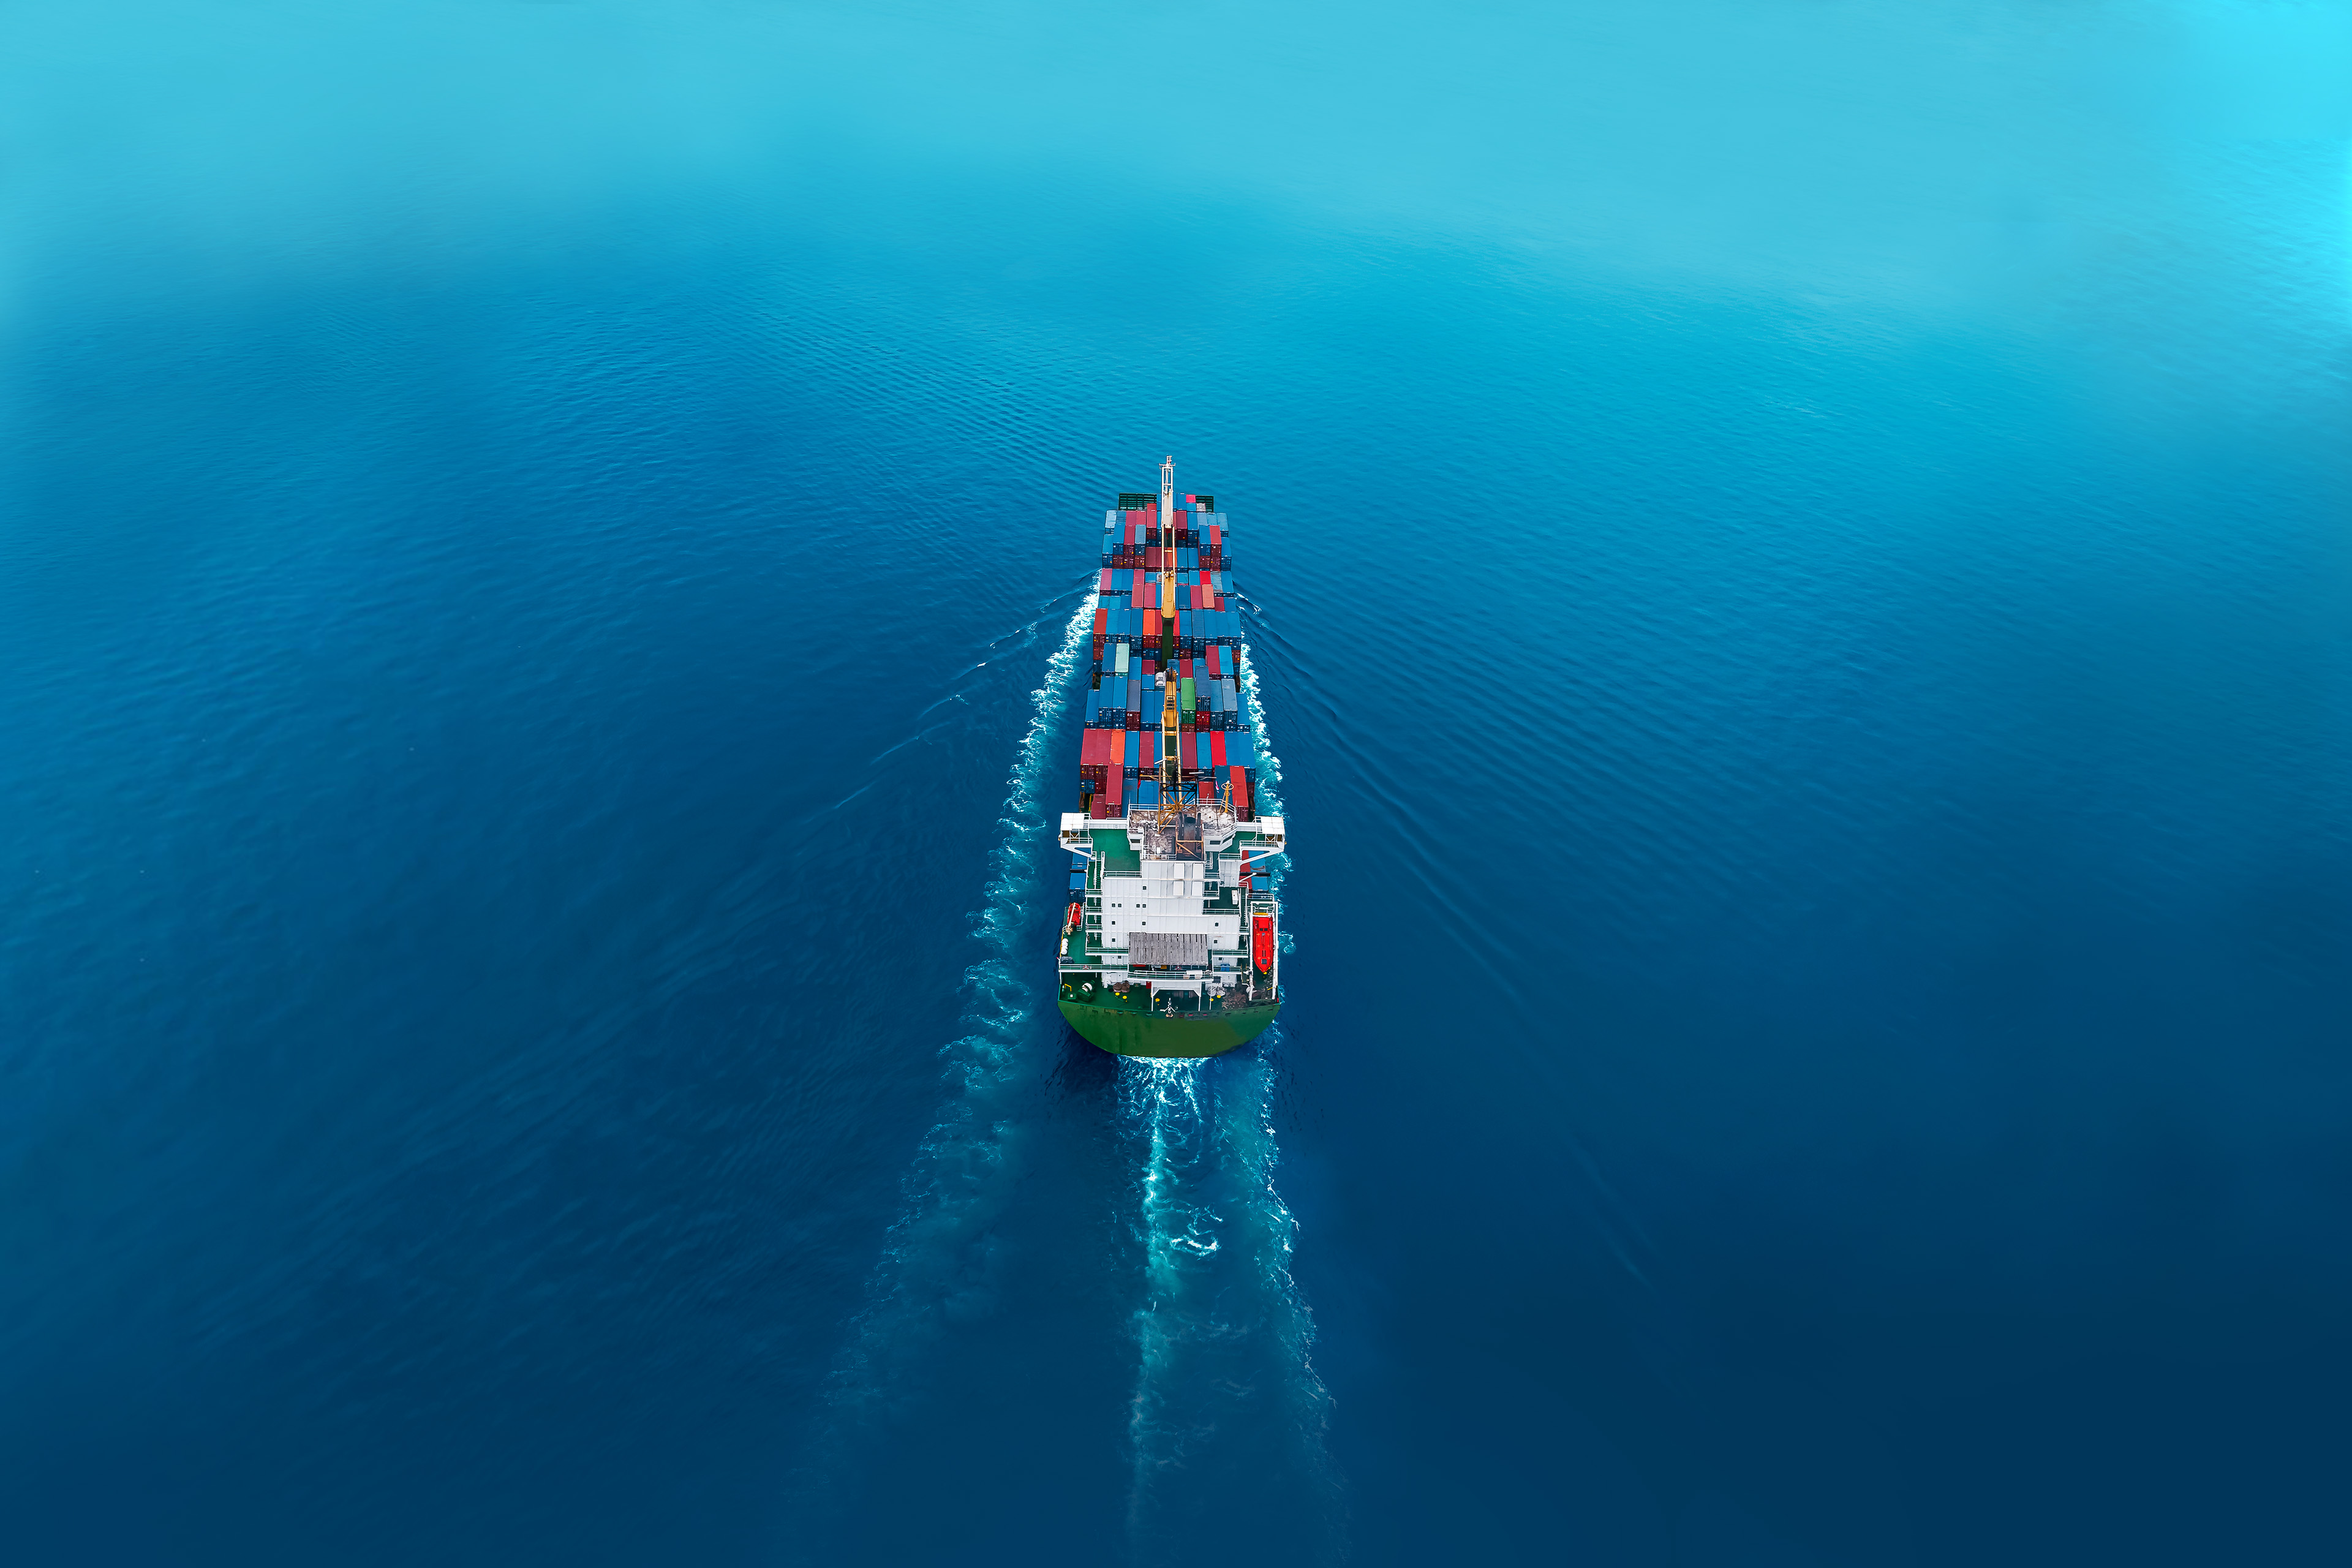 Aerial view of cargo ships in containers sailing in the sea